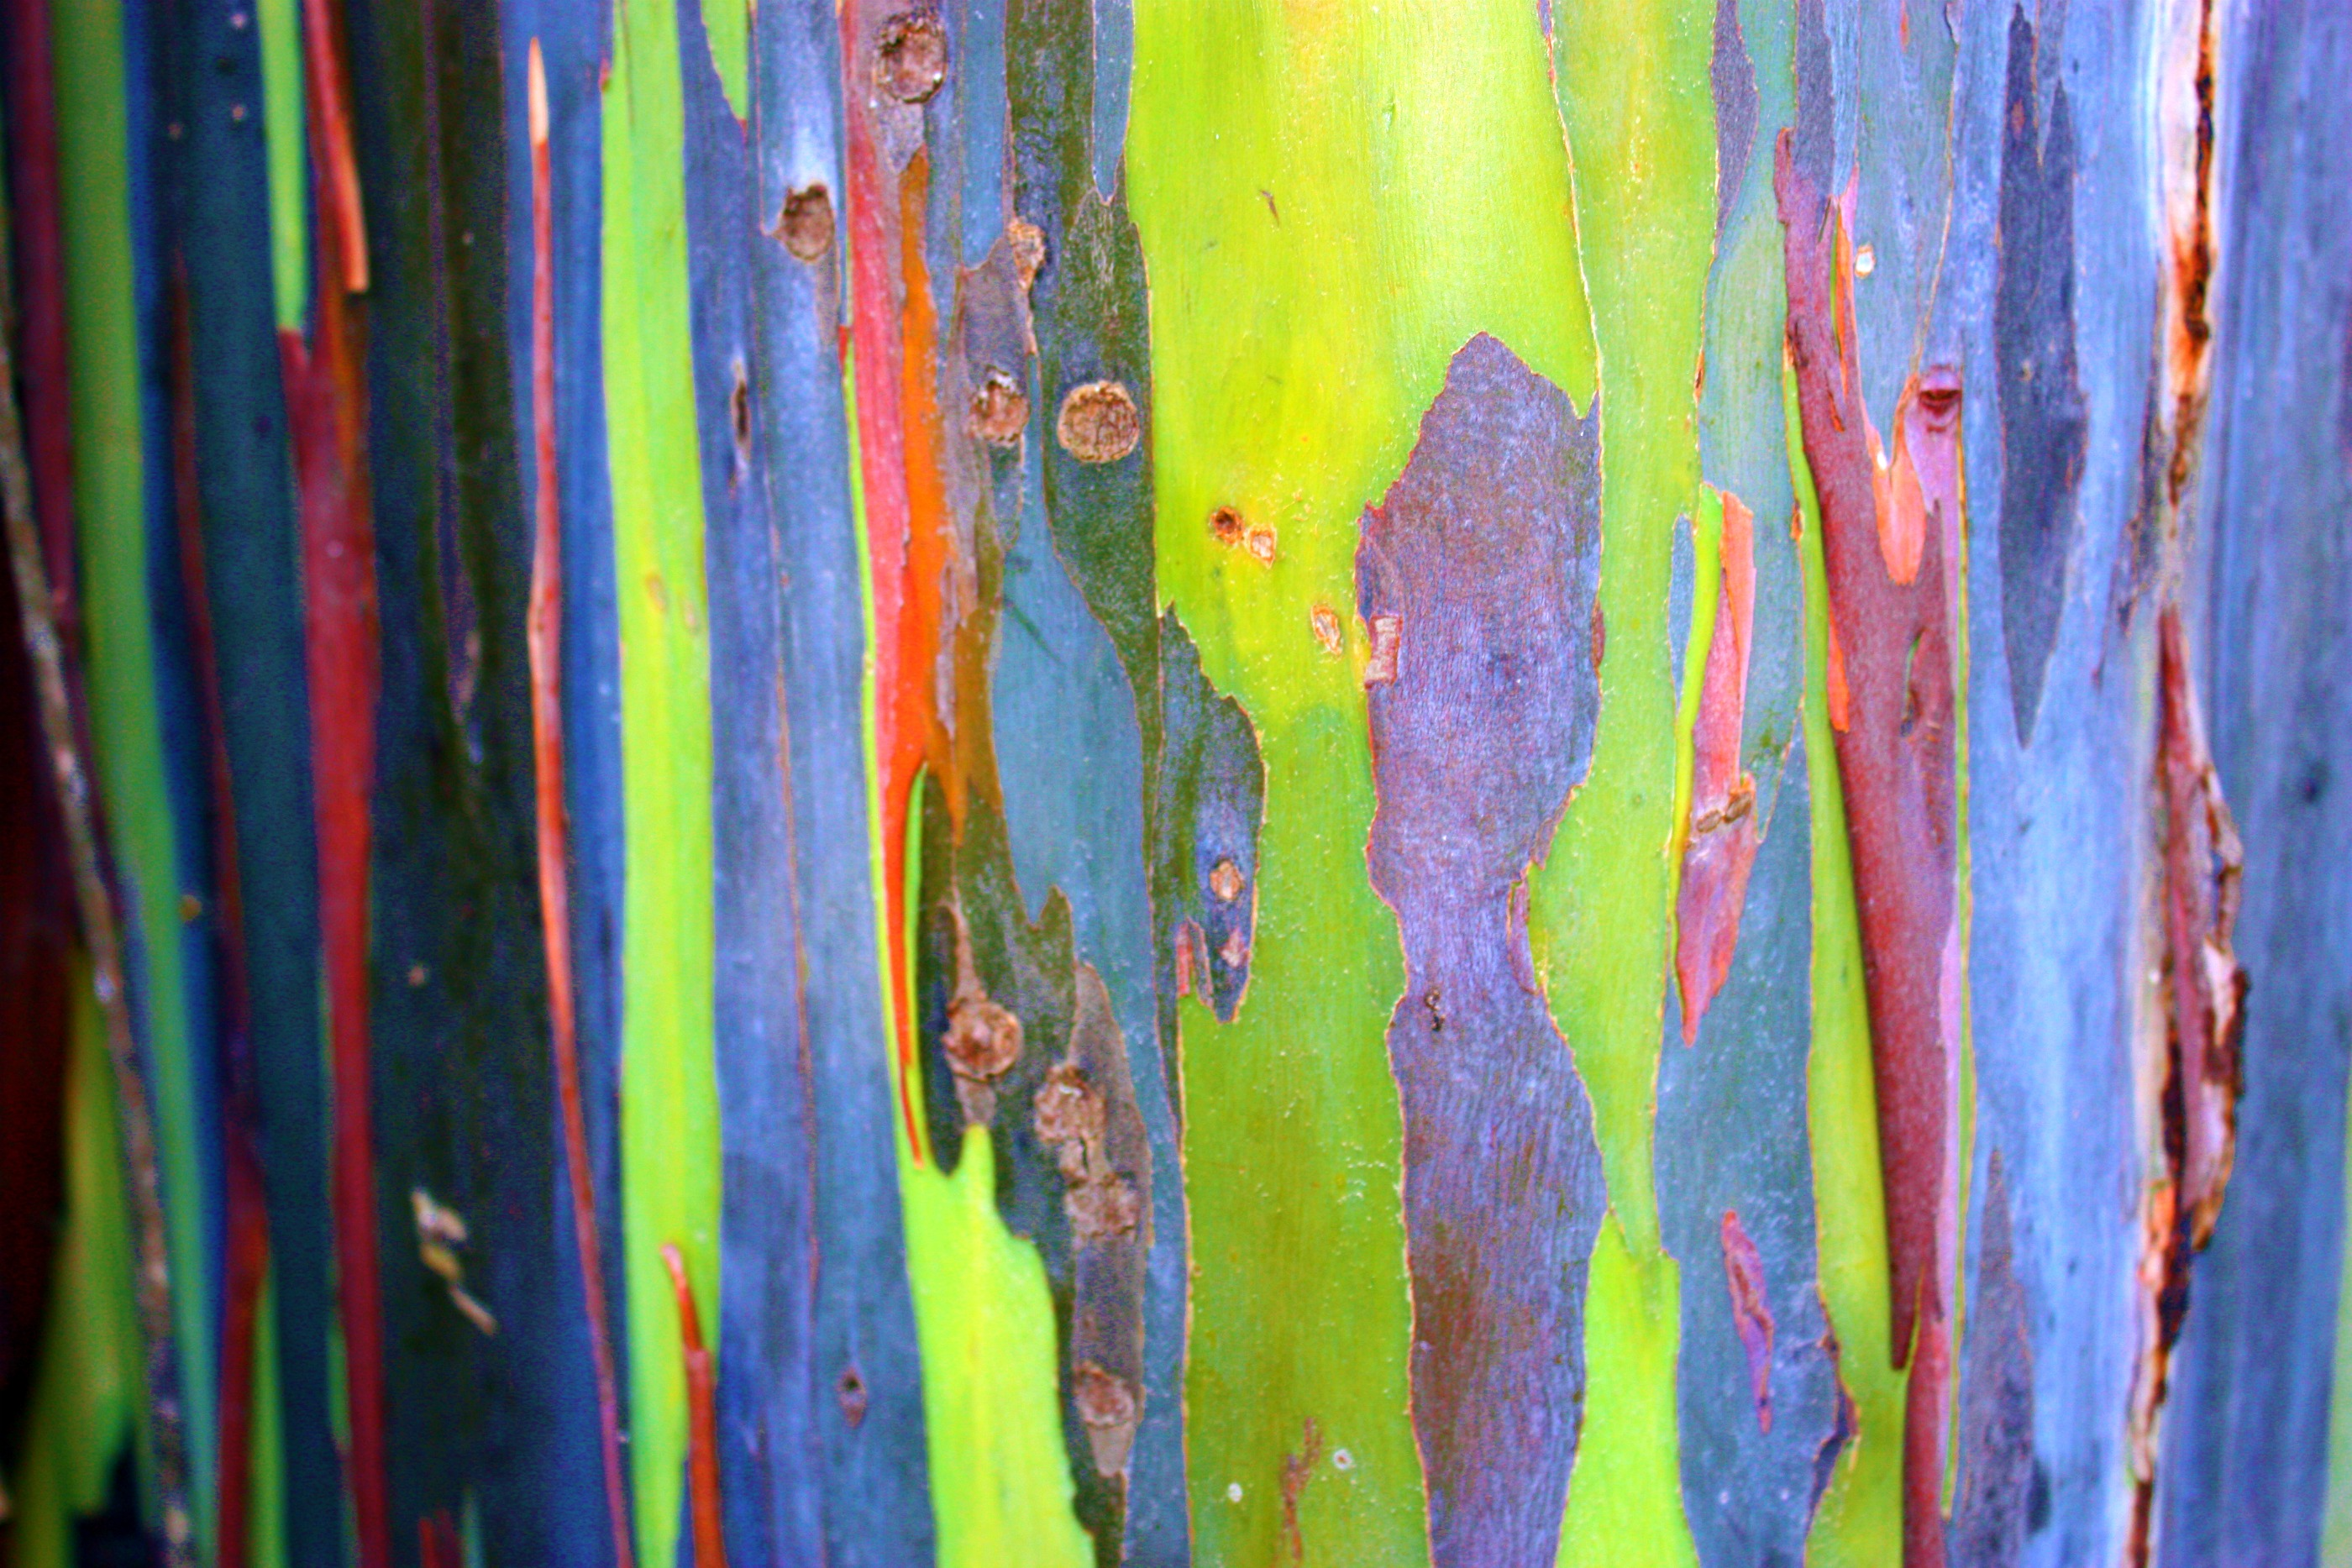 Eucalyptus Bark by AngelAK47 on DeviantArt